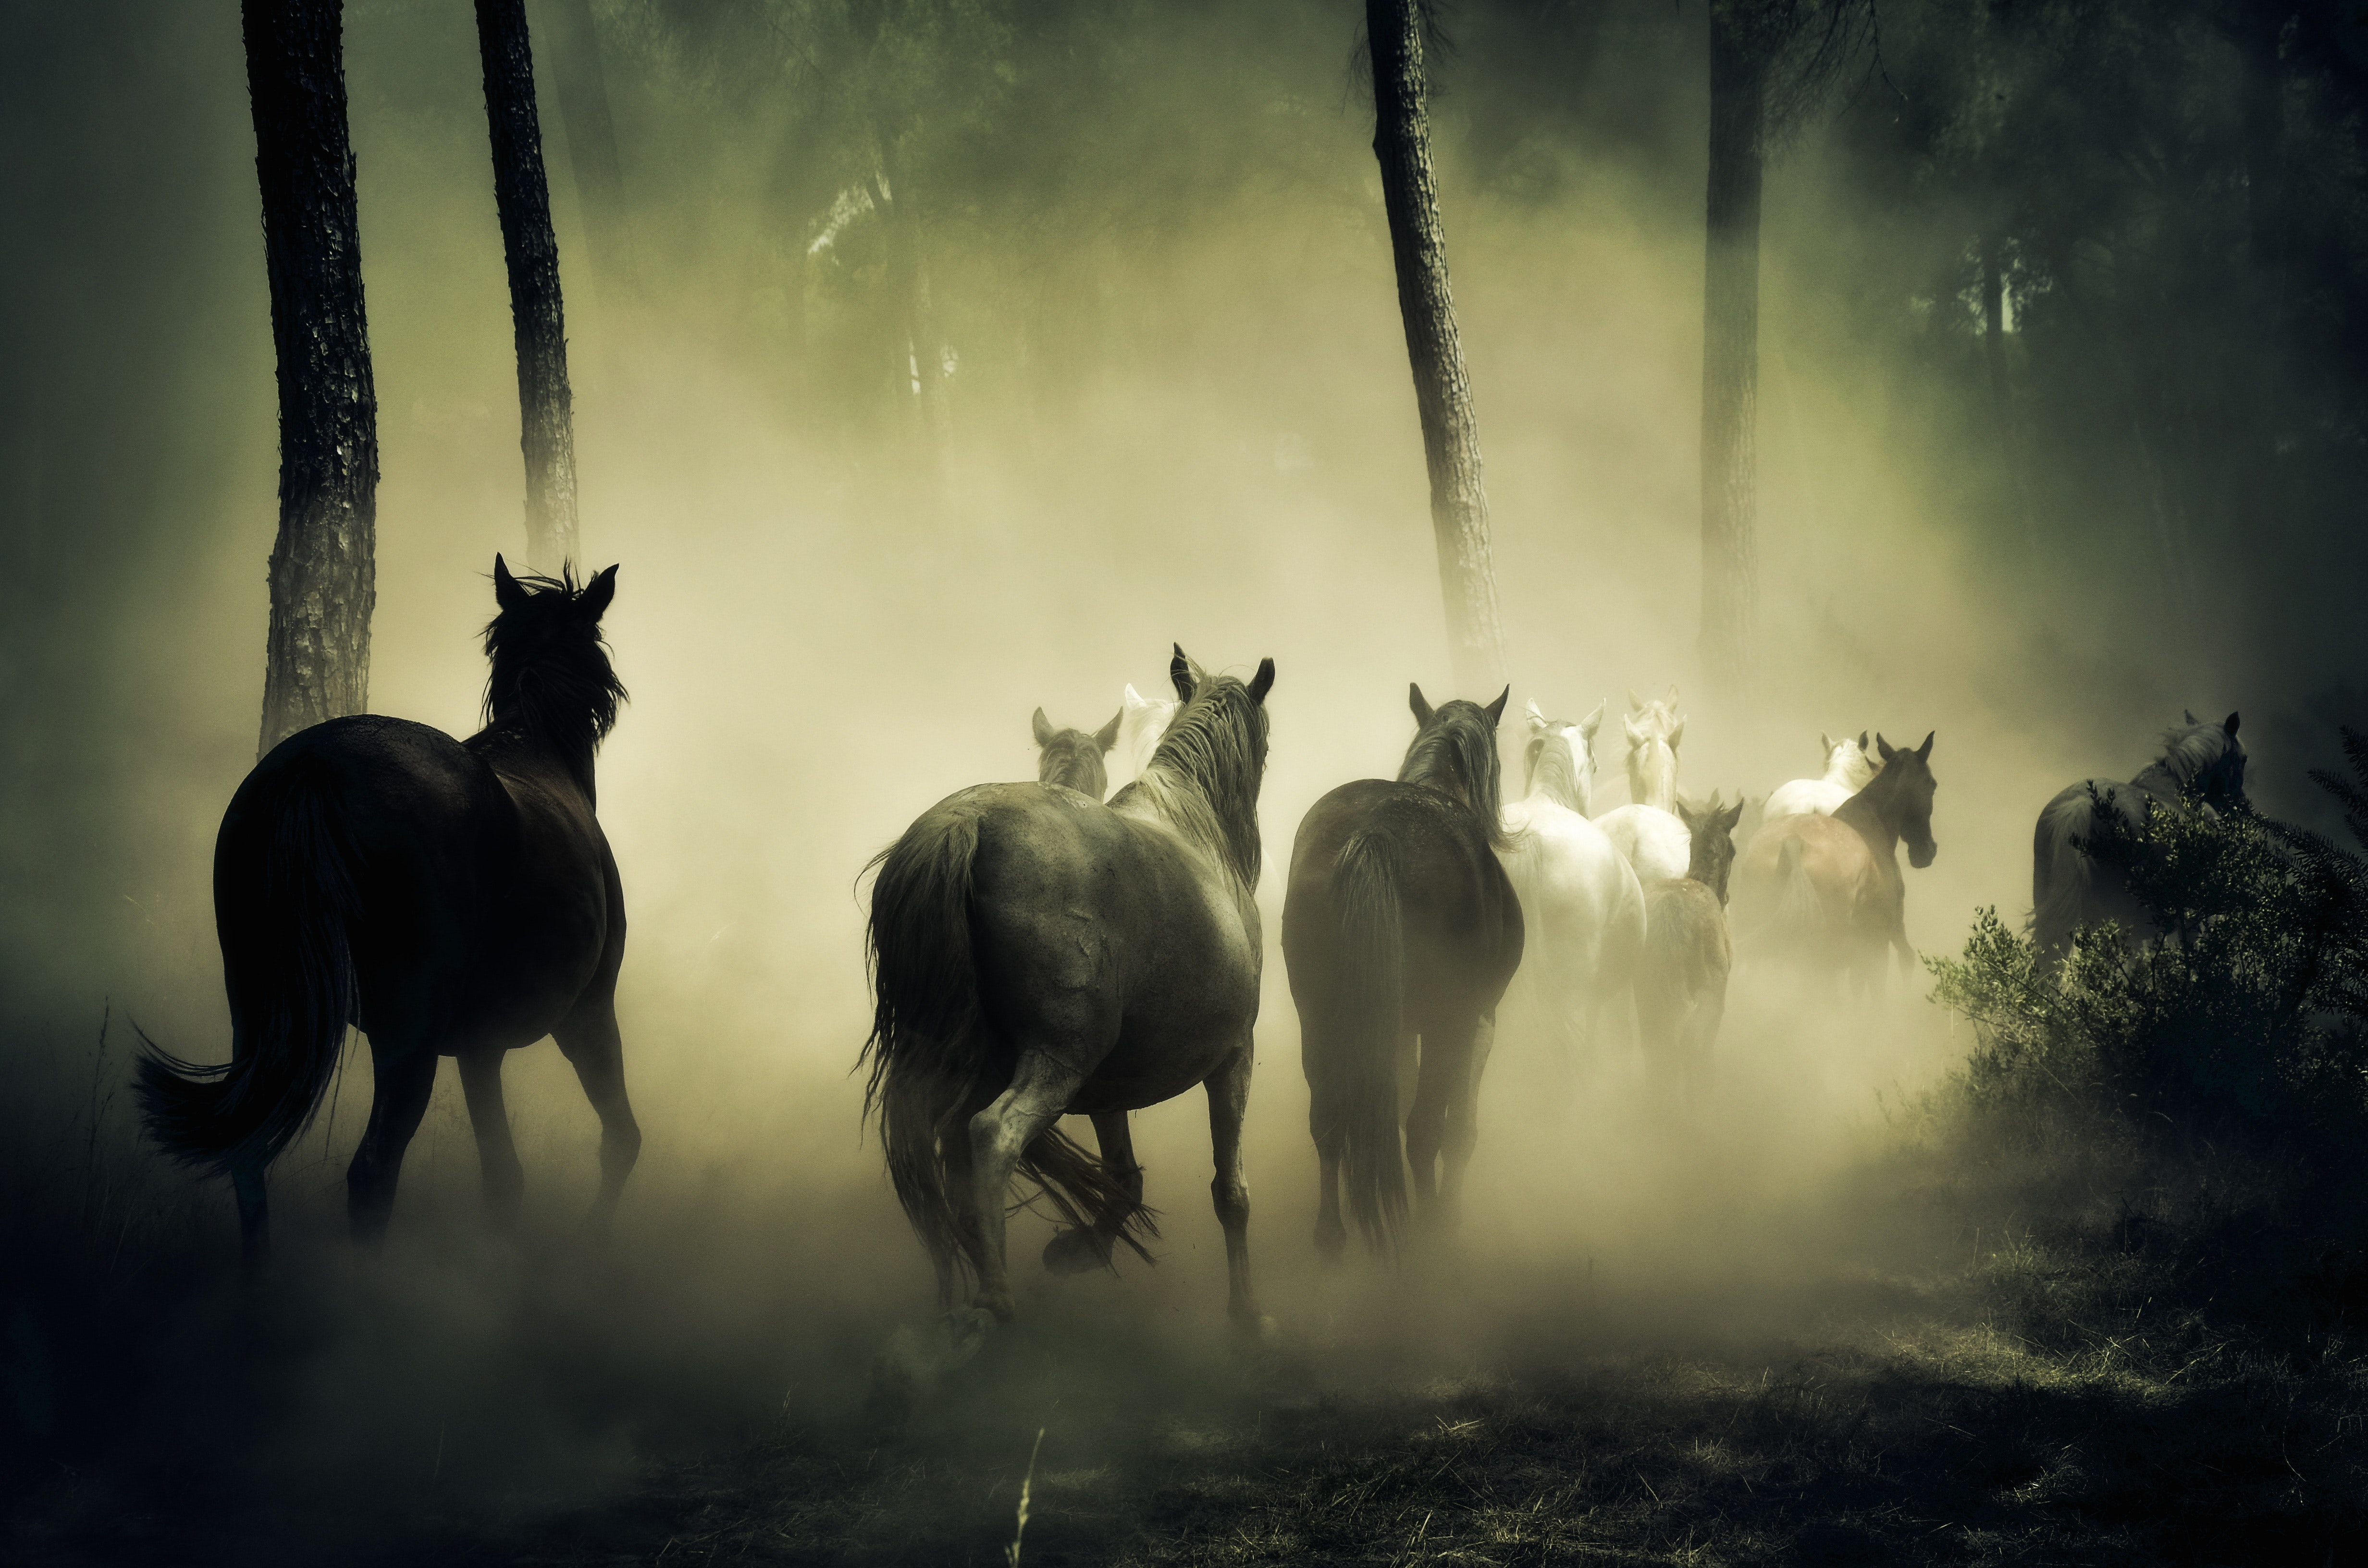 Group of Horse Running, Mist, Outdoors, Wildlife, Woods, HQ Photo